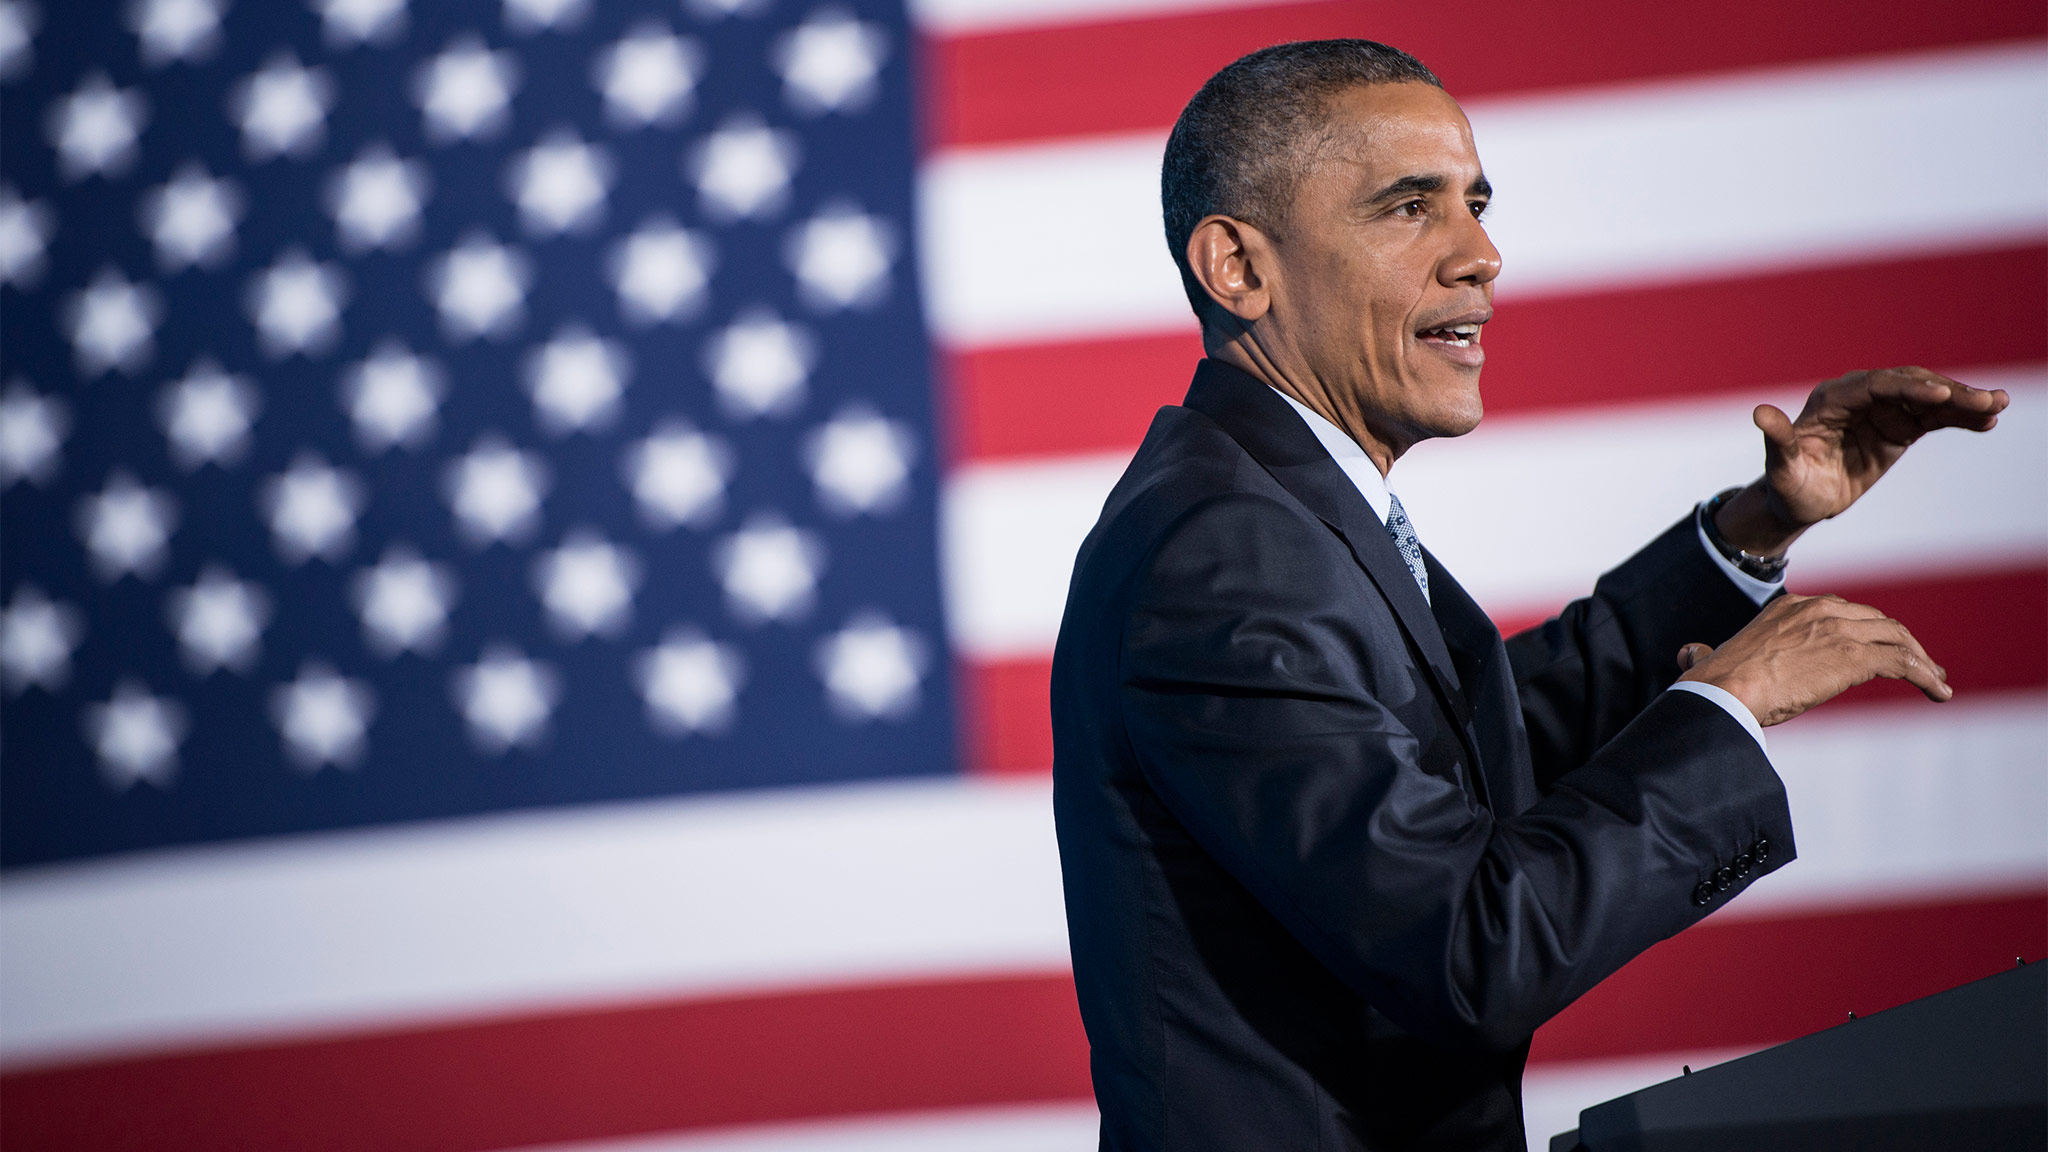 US President Barack Obama speaks at the City Club of Cleveland on March 18, 2015 in Cleveland, Ohio. Obama spoke about the middle class economy. AFP PHOTO/BRENDAN SMIALOWSKI